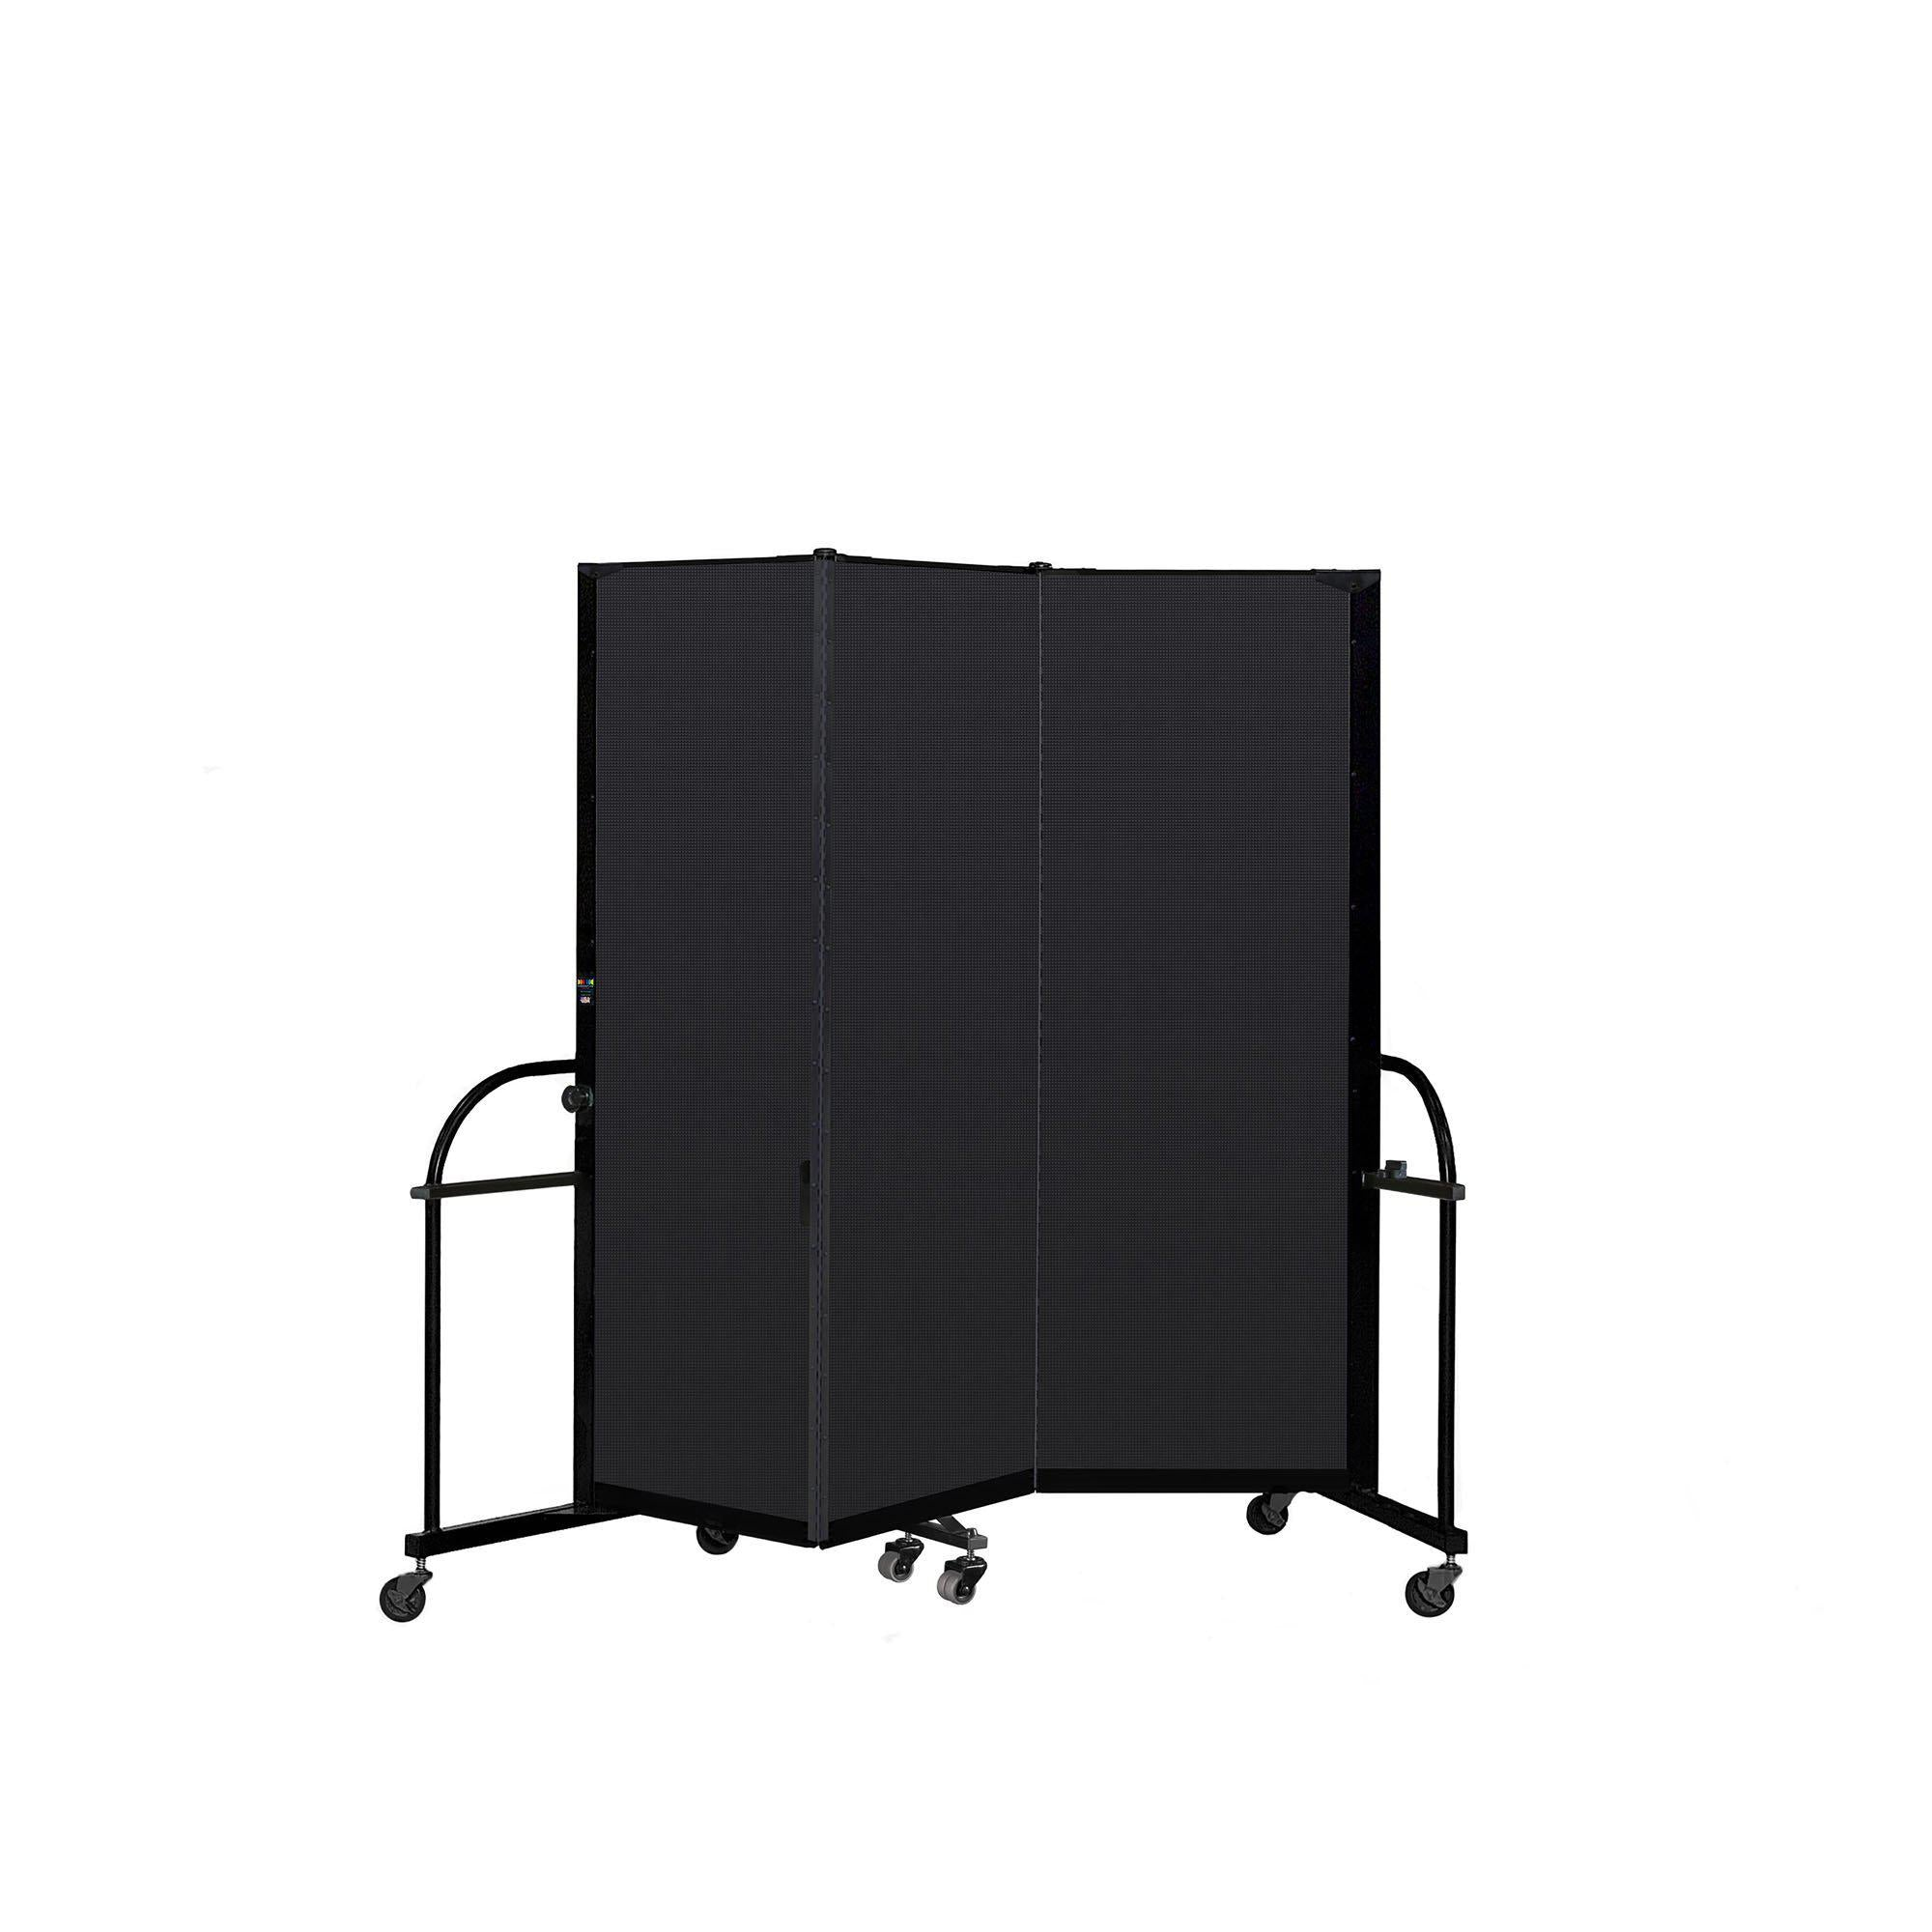 Screenflex Heavy Duty Room Divider, 6' High-Partitions & Display Panels-